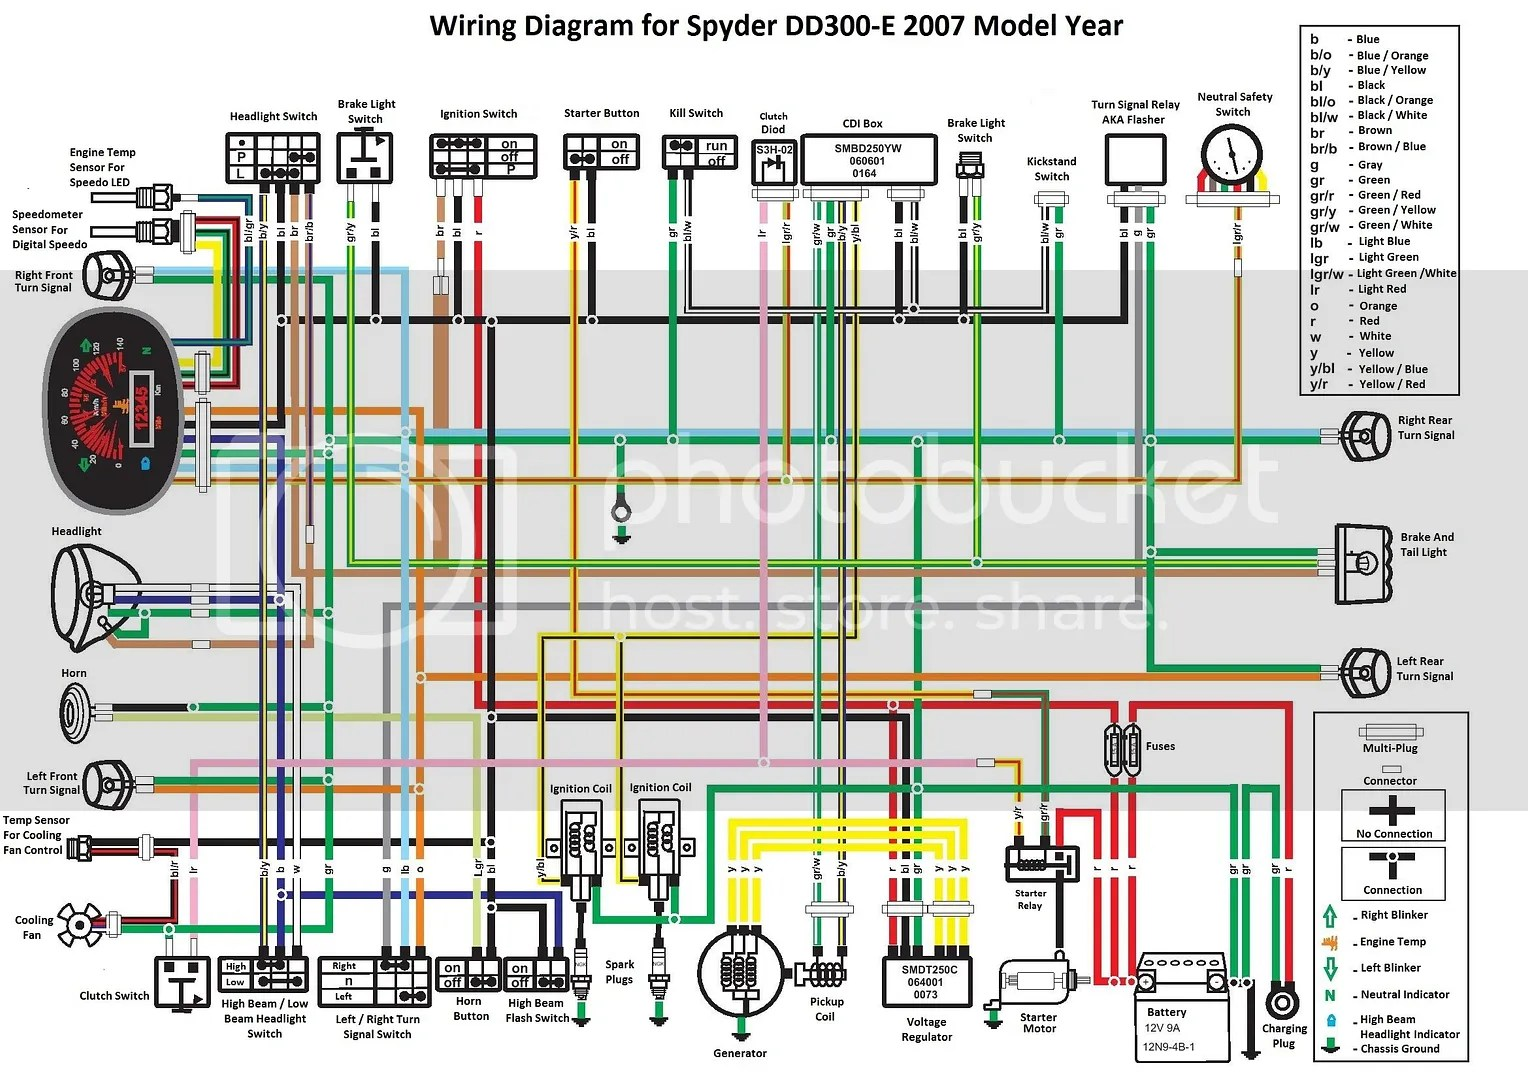 NEWWIRINGDIAGRAM page 001 1?resize=665%2C470 yamaha virago 250 wiring diagram the best wiring diagram 2017 yamaha xv250 virago wiring diagram at n-0.co